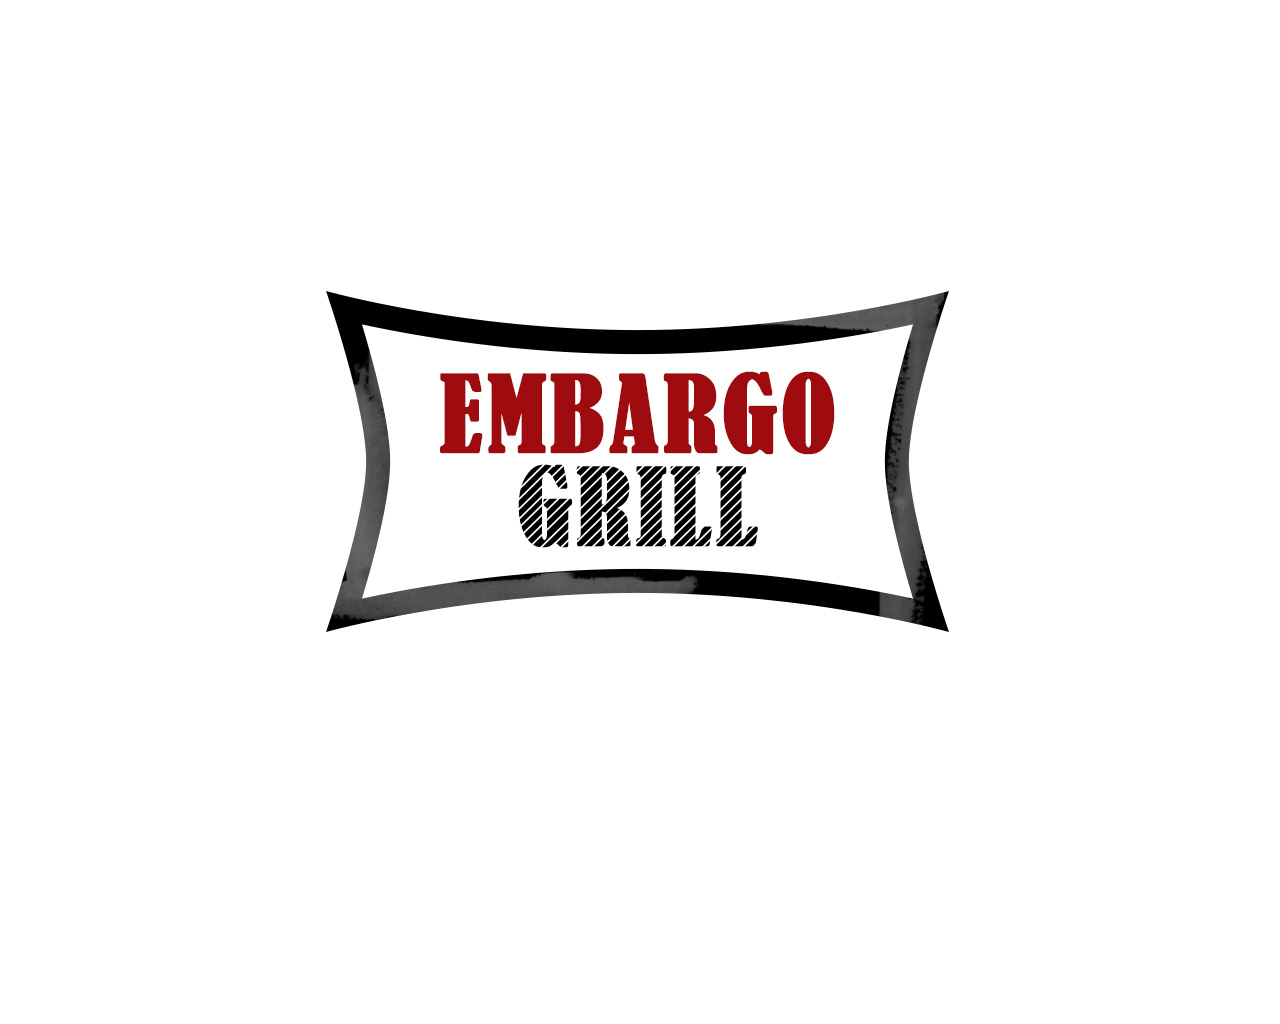 Logo Design by Ioanna Rokka - Entry No. 52 in the Logo Design Contest Captivating Logo Design for Embargo Grill.